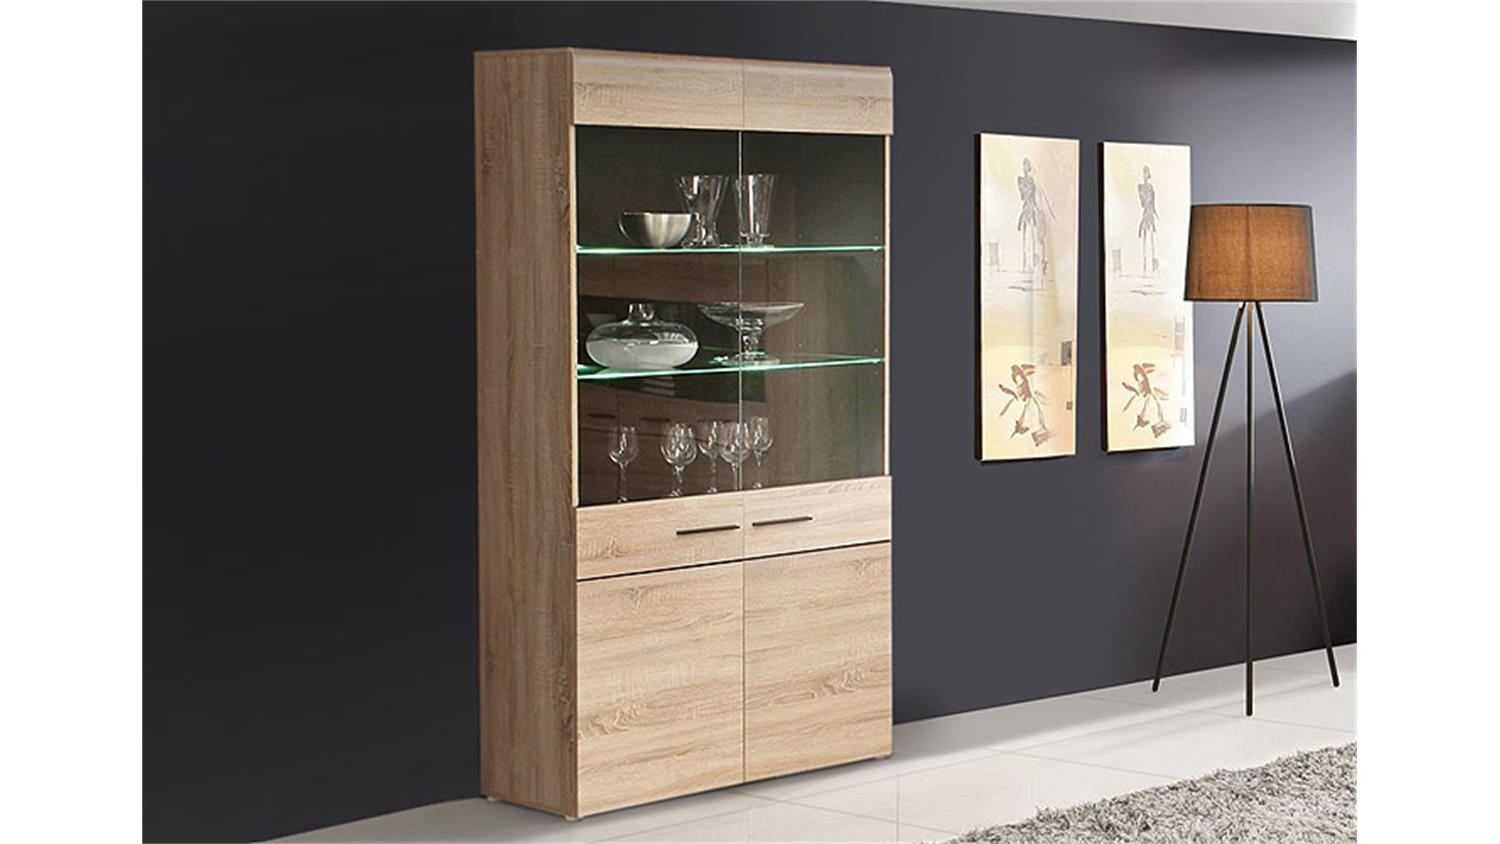 vitrine combino sonoma denver eiche wenge inkl led. Black Bedroom Furniture Sets. Home Design Ideas